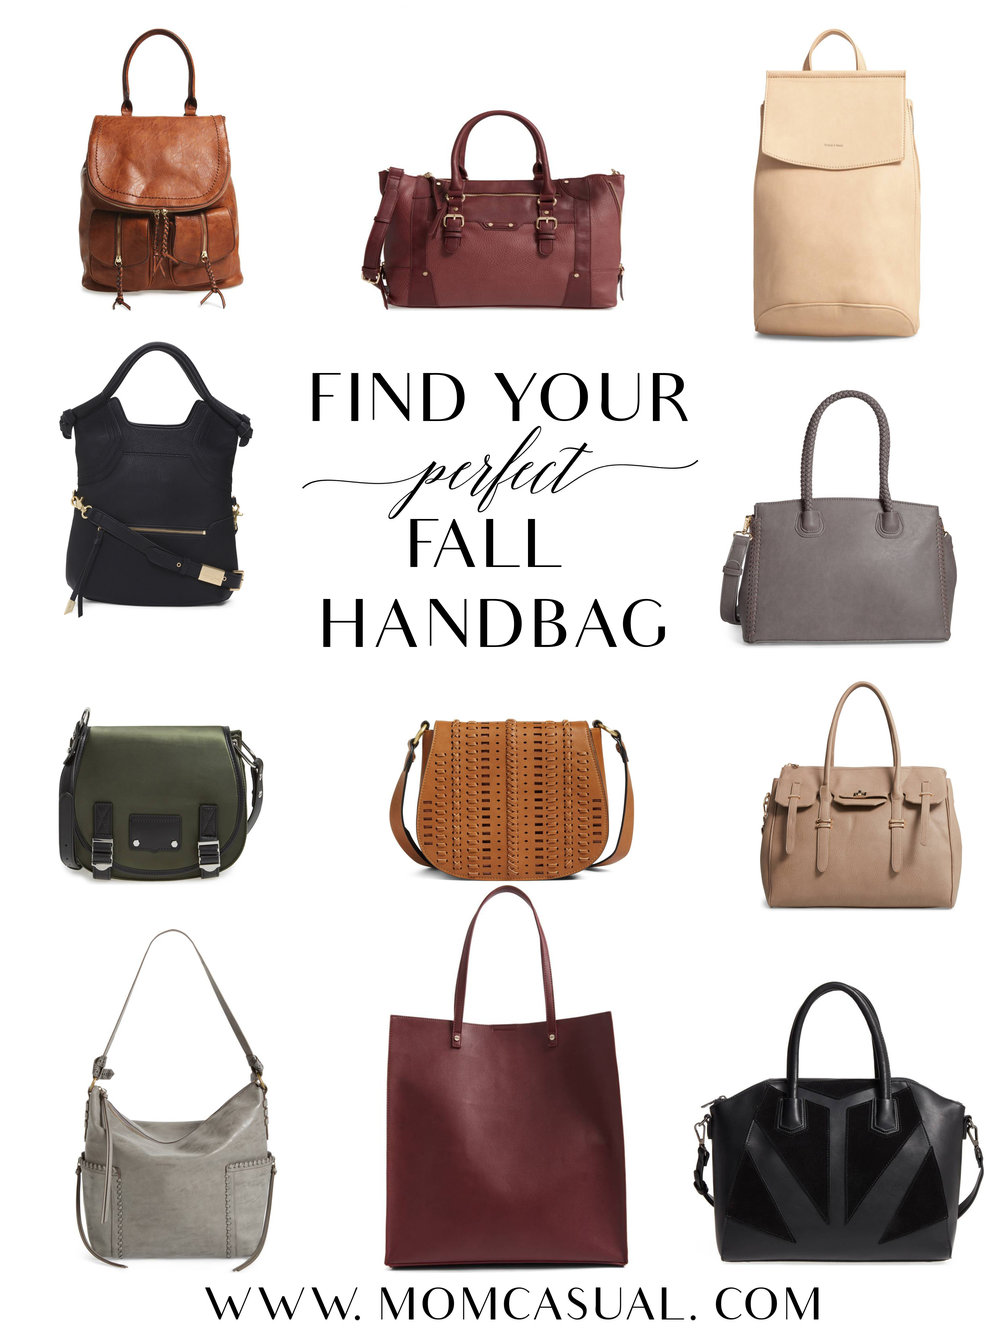 Find Your Perfect Fall Handbag